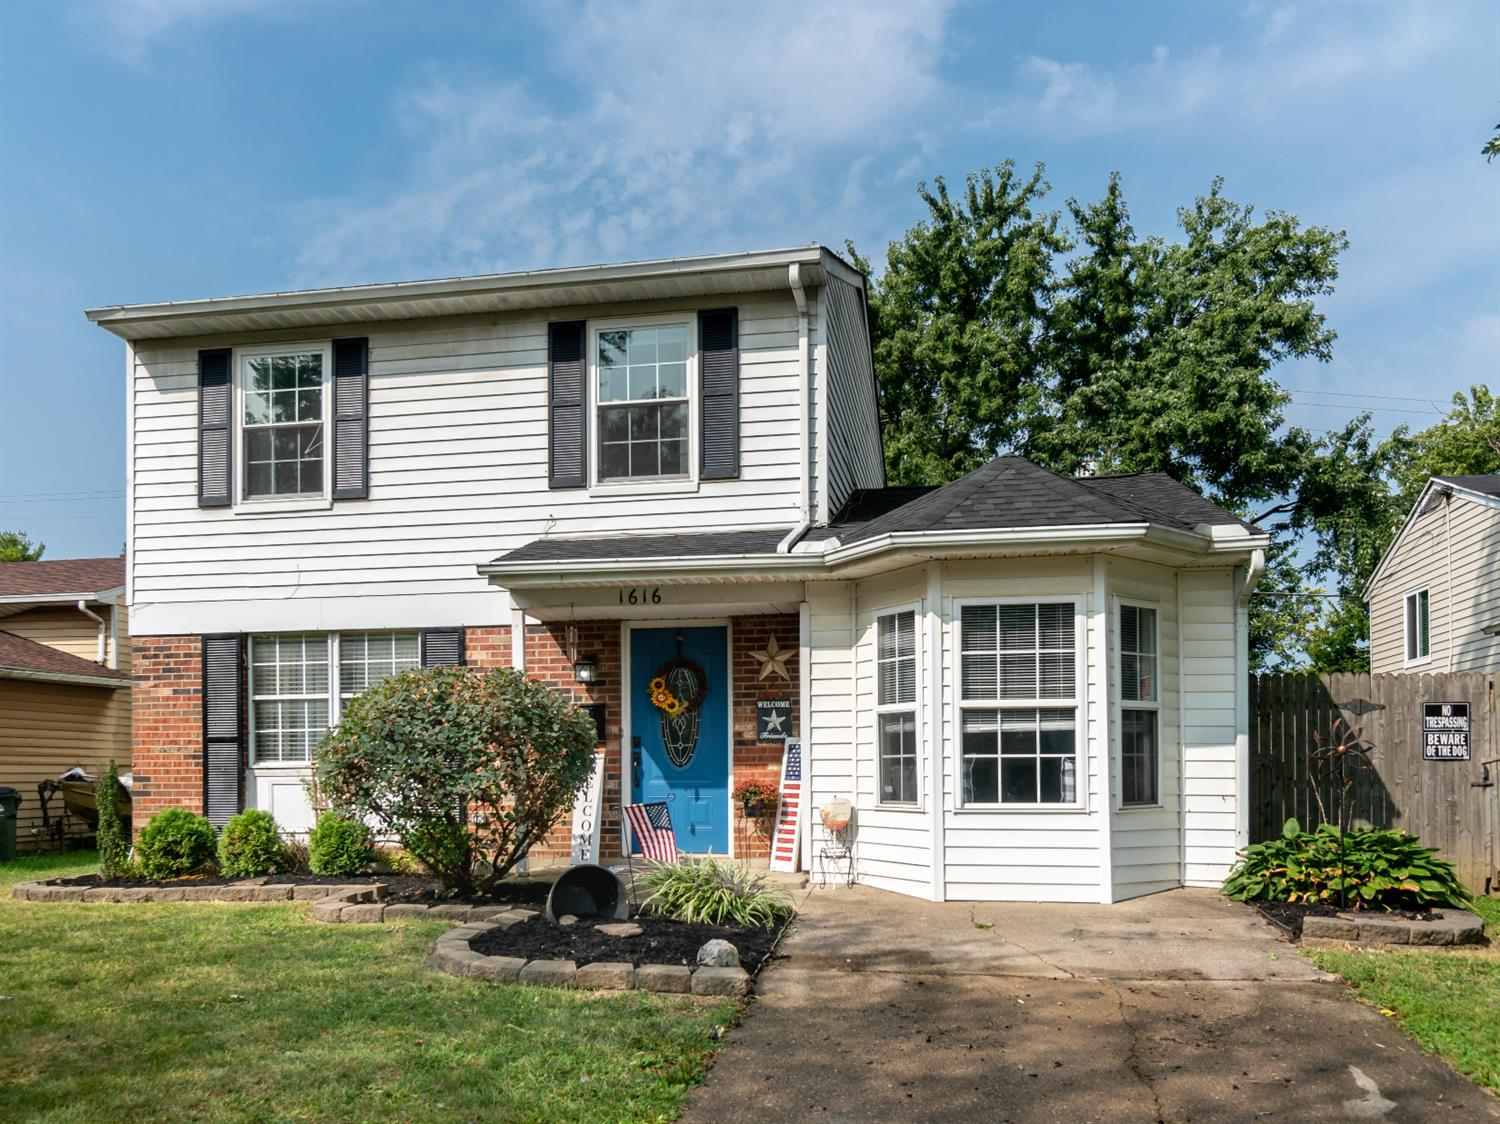 1616 Carriage St Middletown South, OH